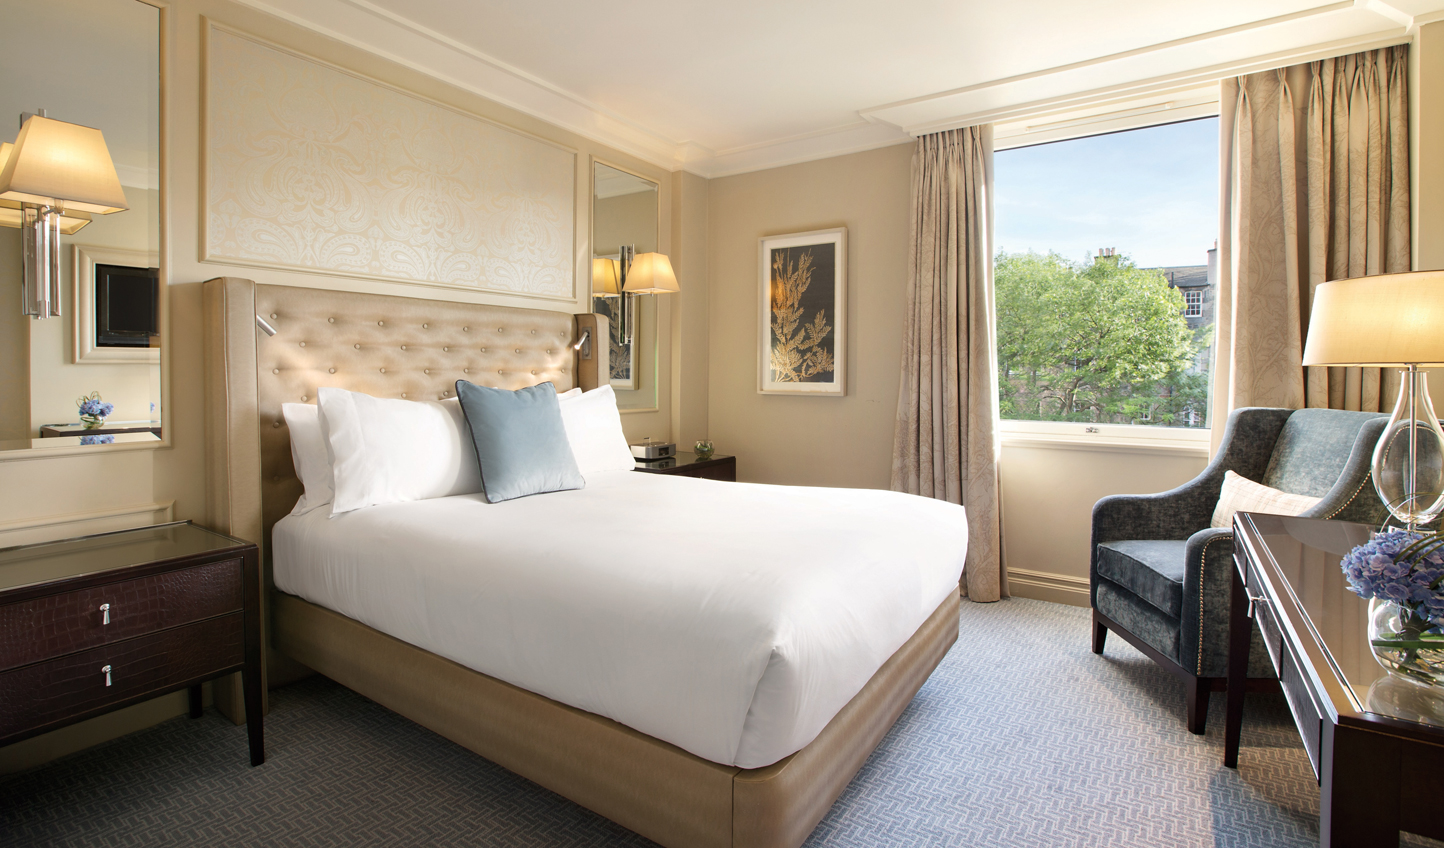 Classic and elegant, The Caledonian makes for a luxurious stay in Edinburgh